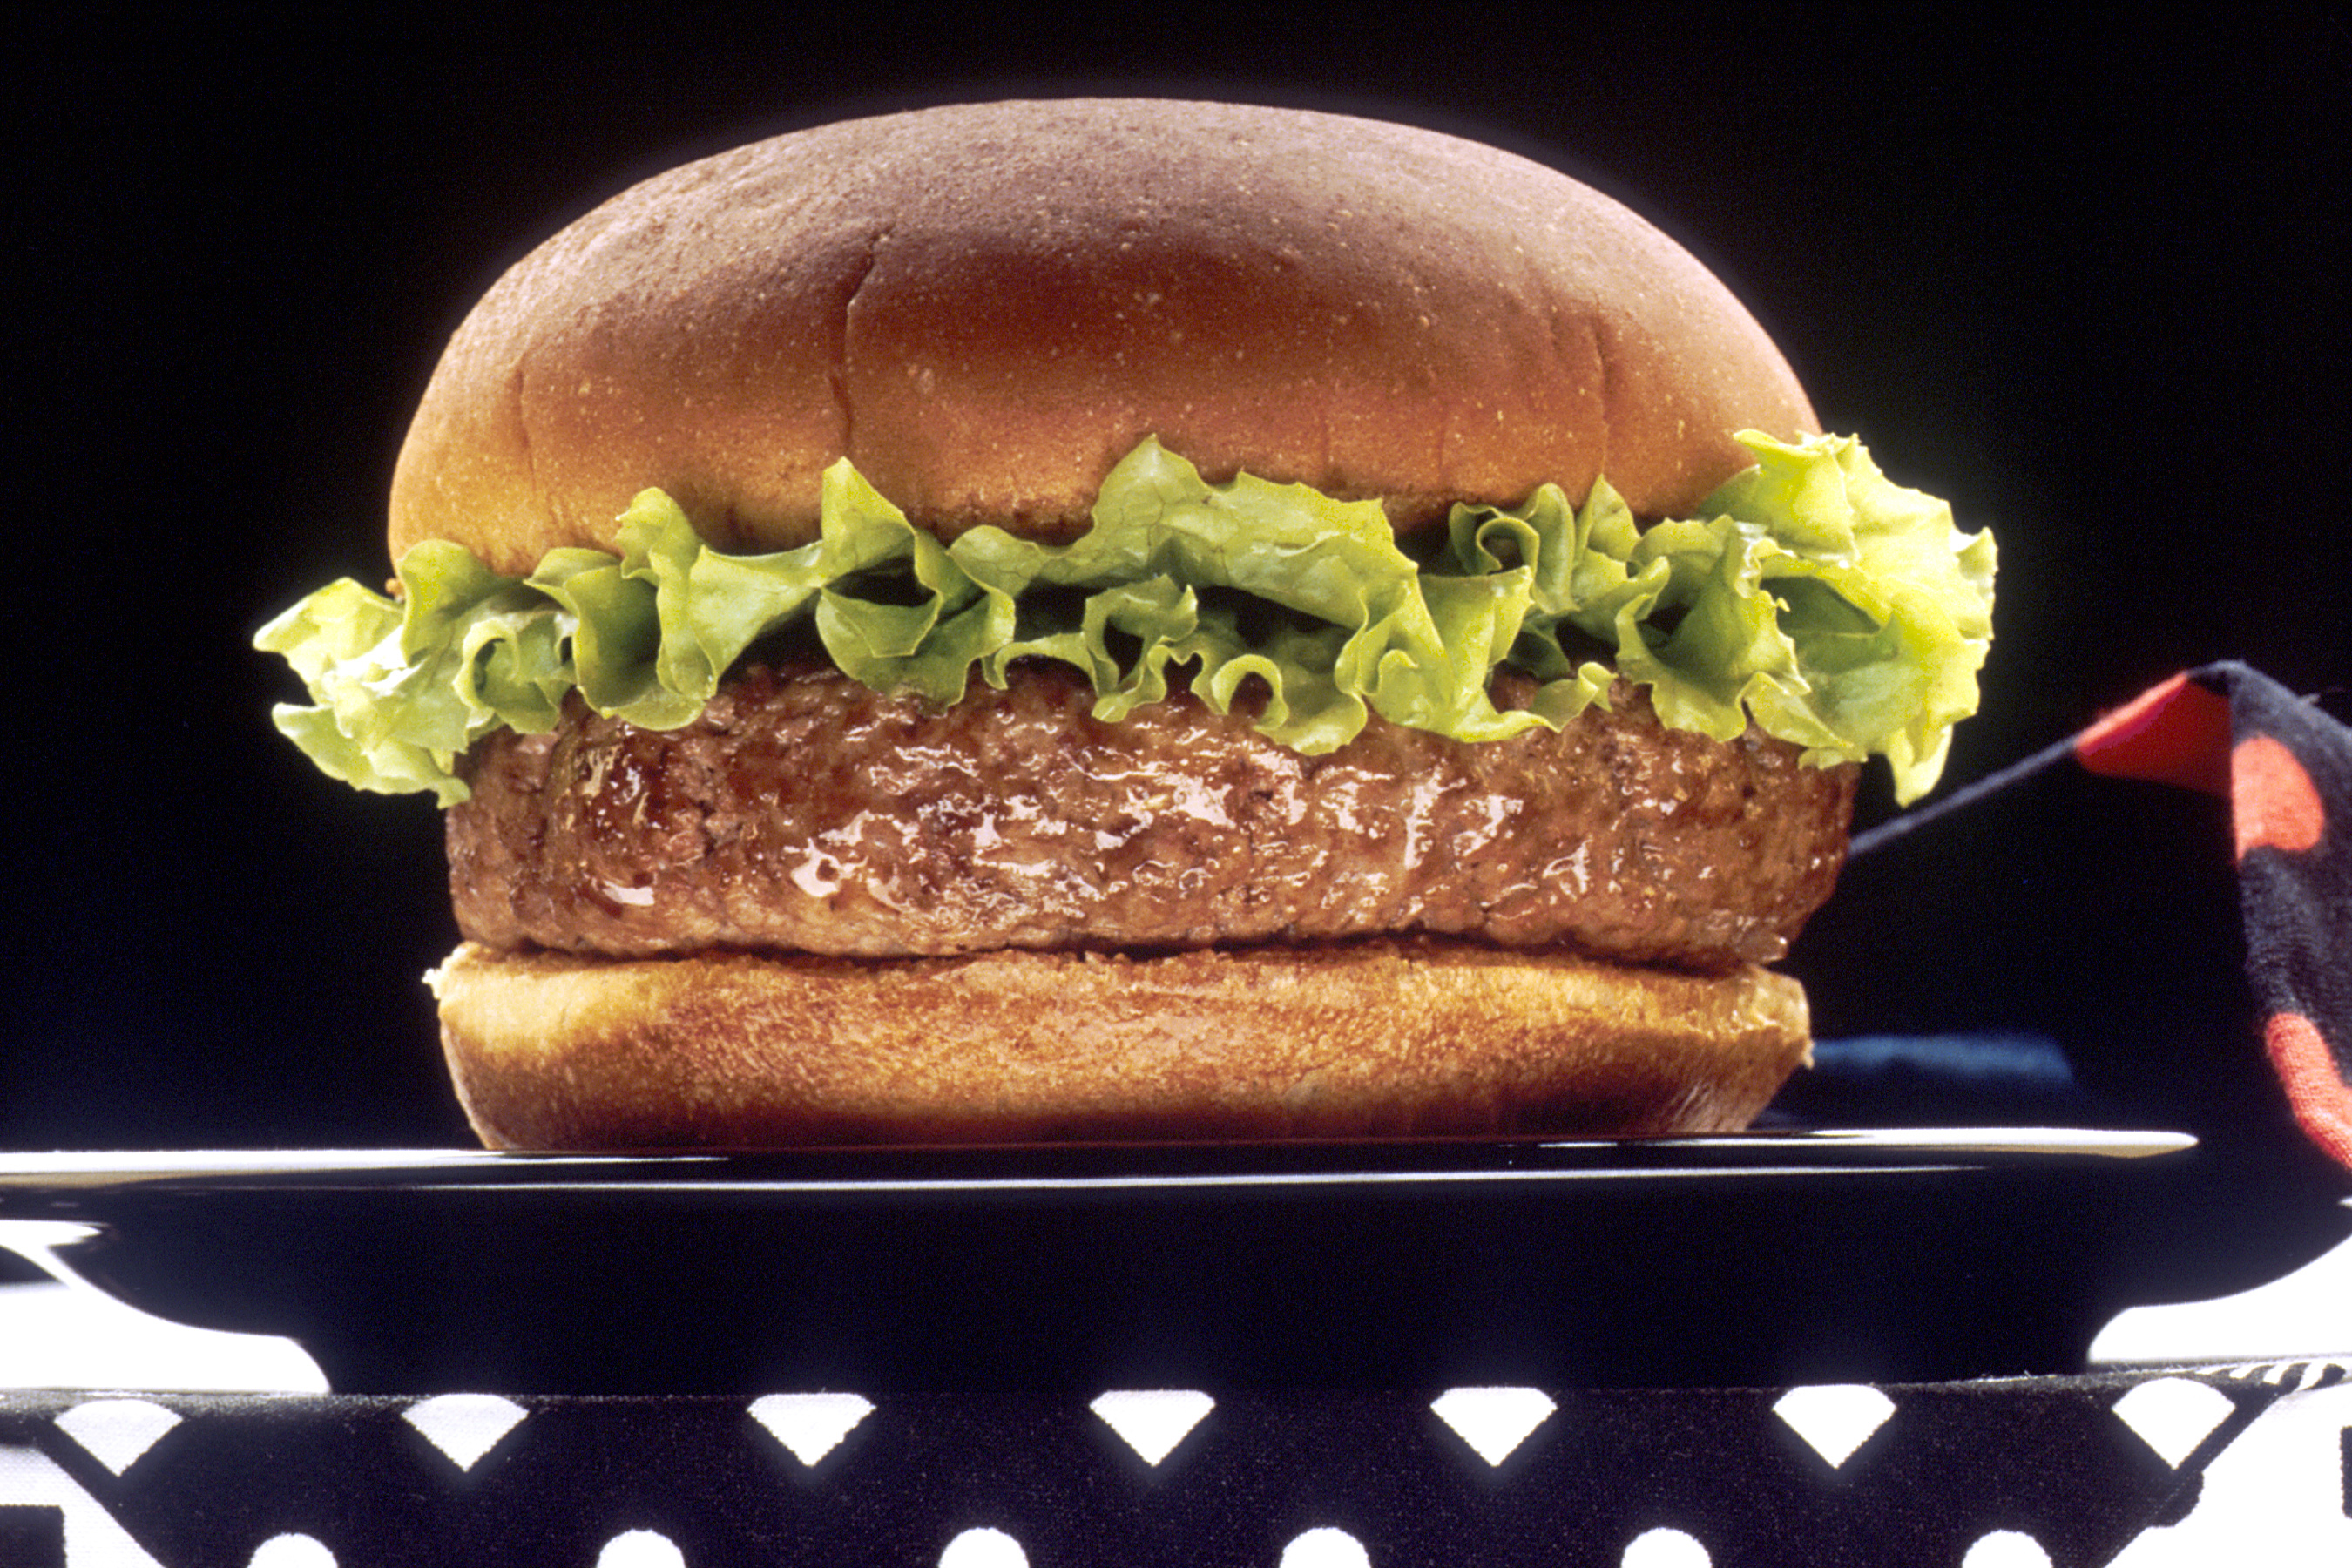 NCI_Visuals_Food_Hamburger